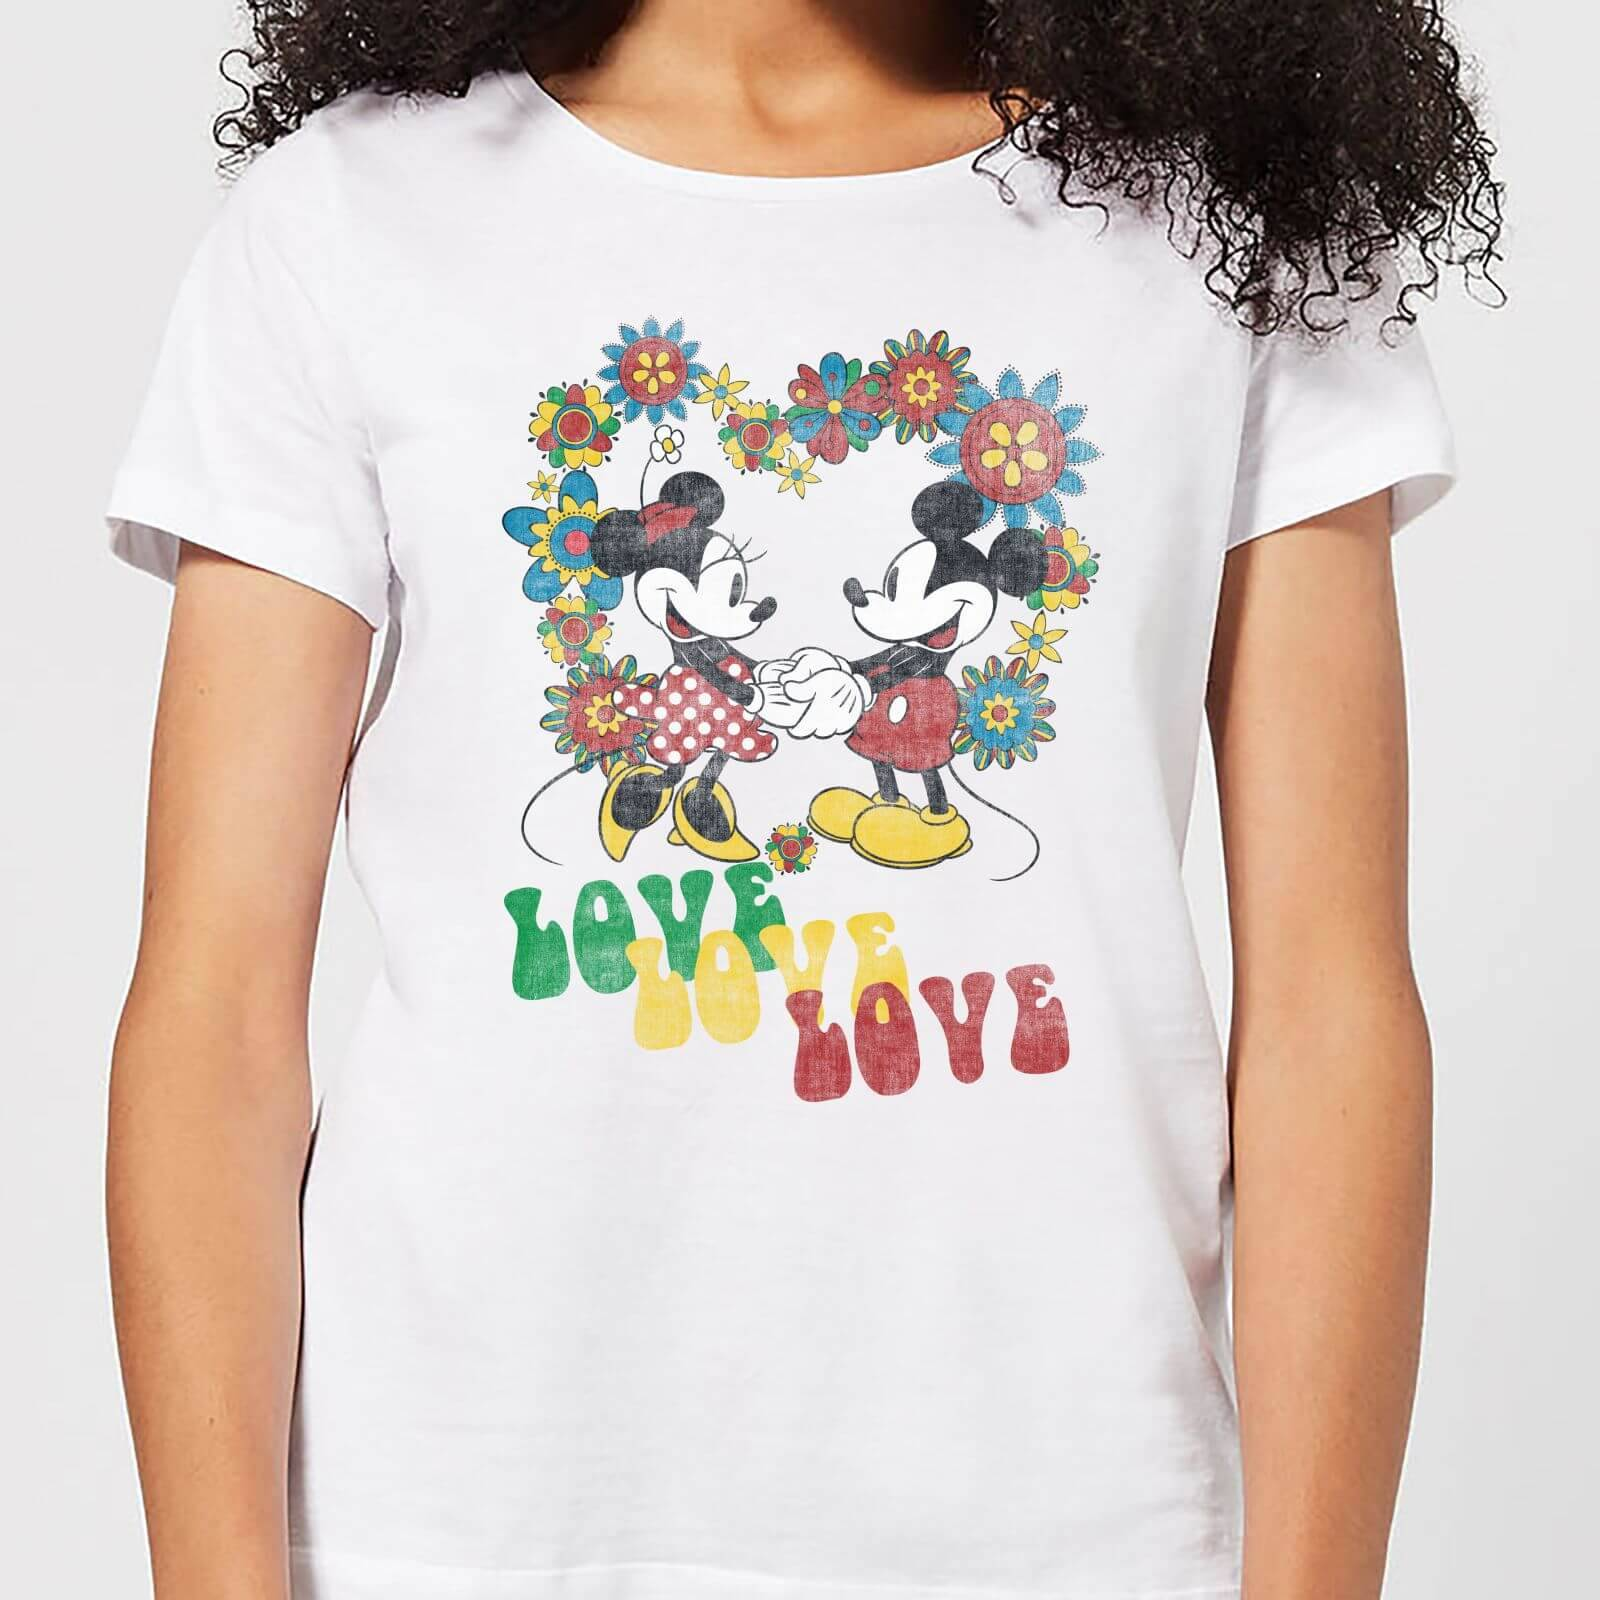 Disney Mickey Mouse Hippie Love Women's T-Shirt - White - S - White